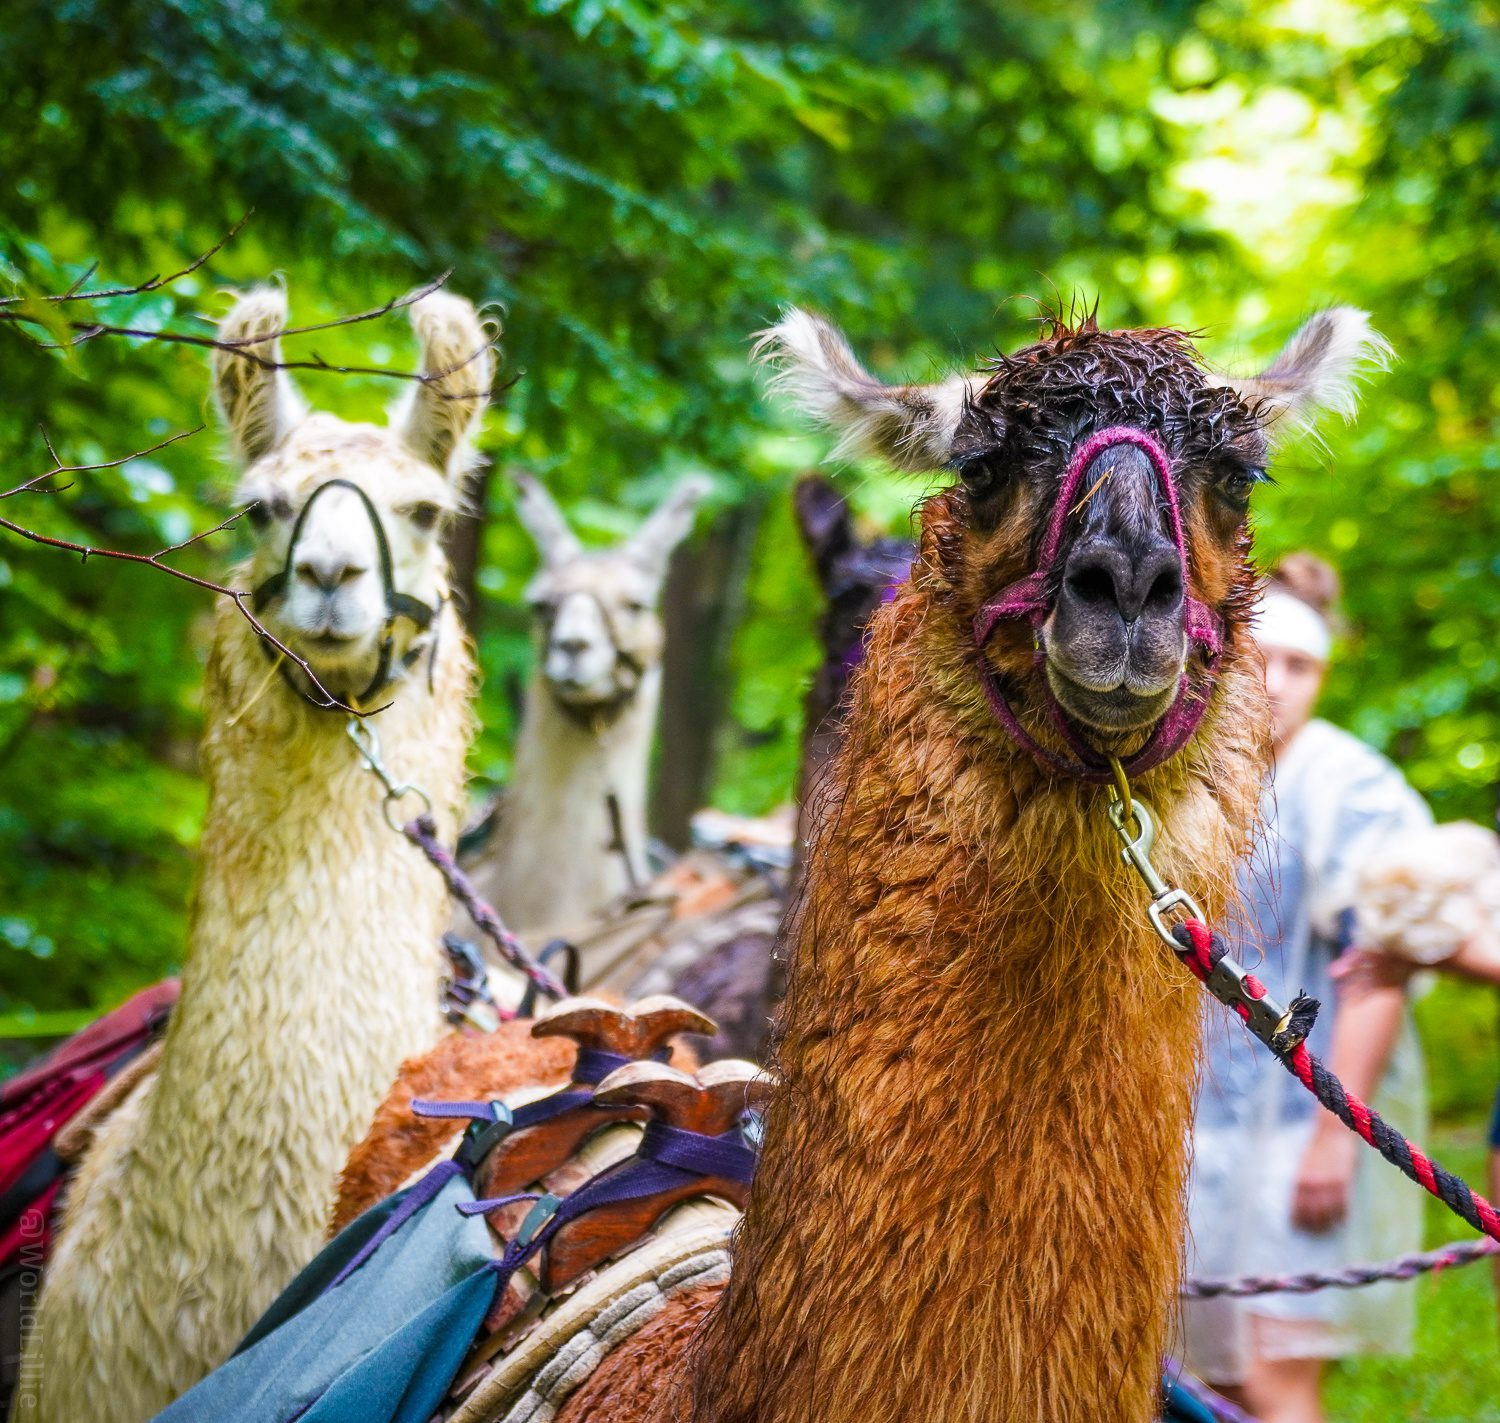 Do you want to come llama trekking with us?